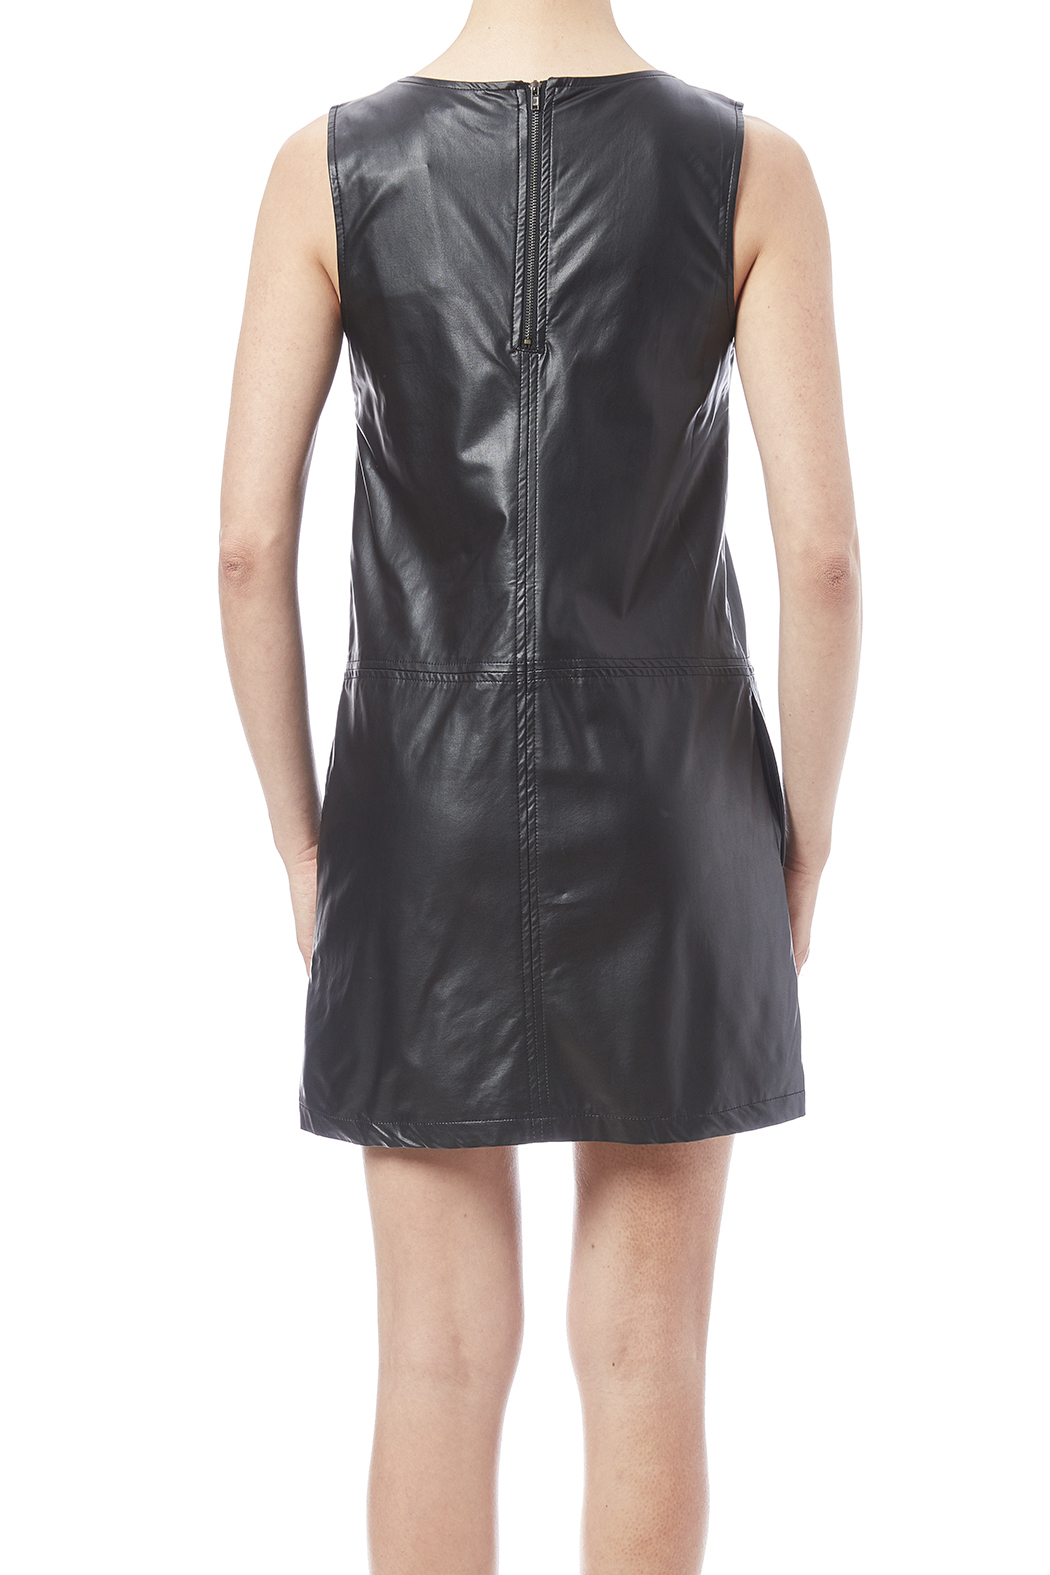 LoveRiche Black Faux Leather Dress - Back Cropped Image